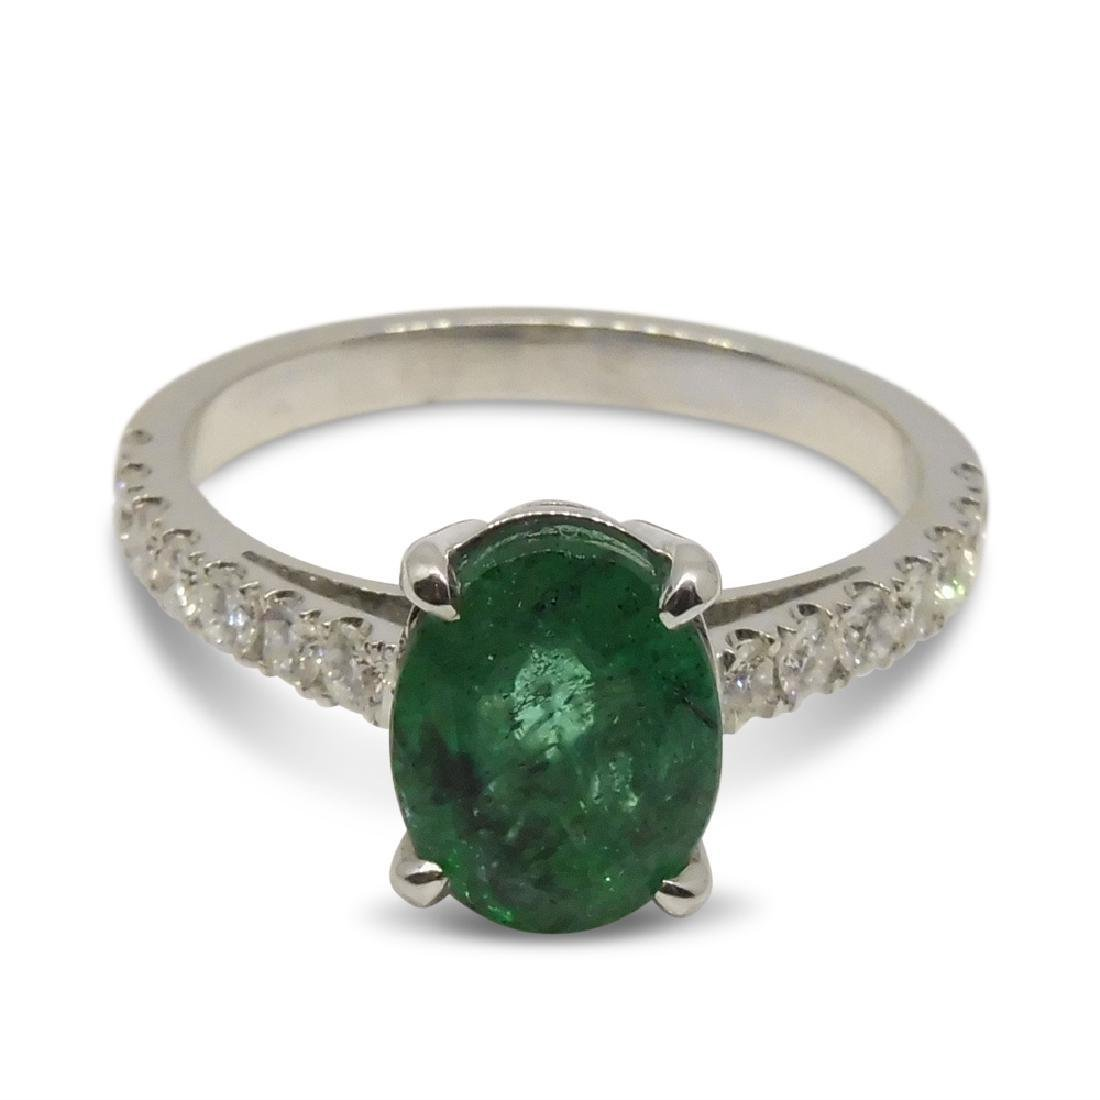 14K White Gold Emerald Diamond Ring, 1.82ct - 6